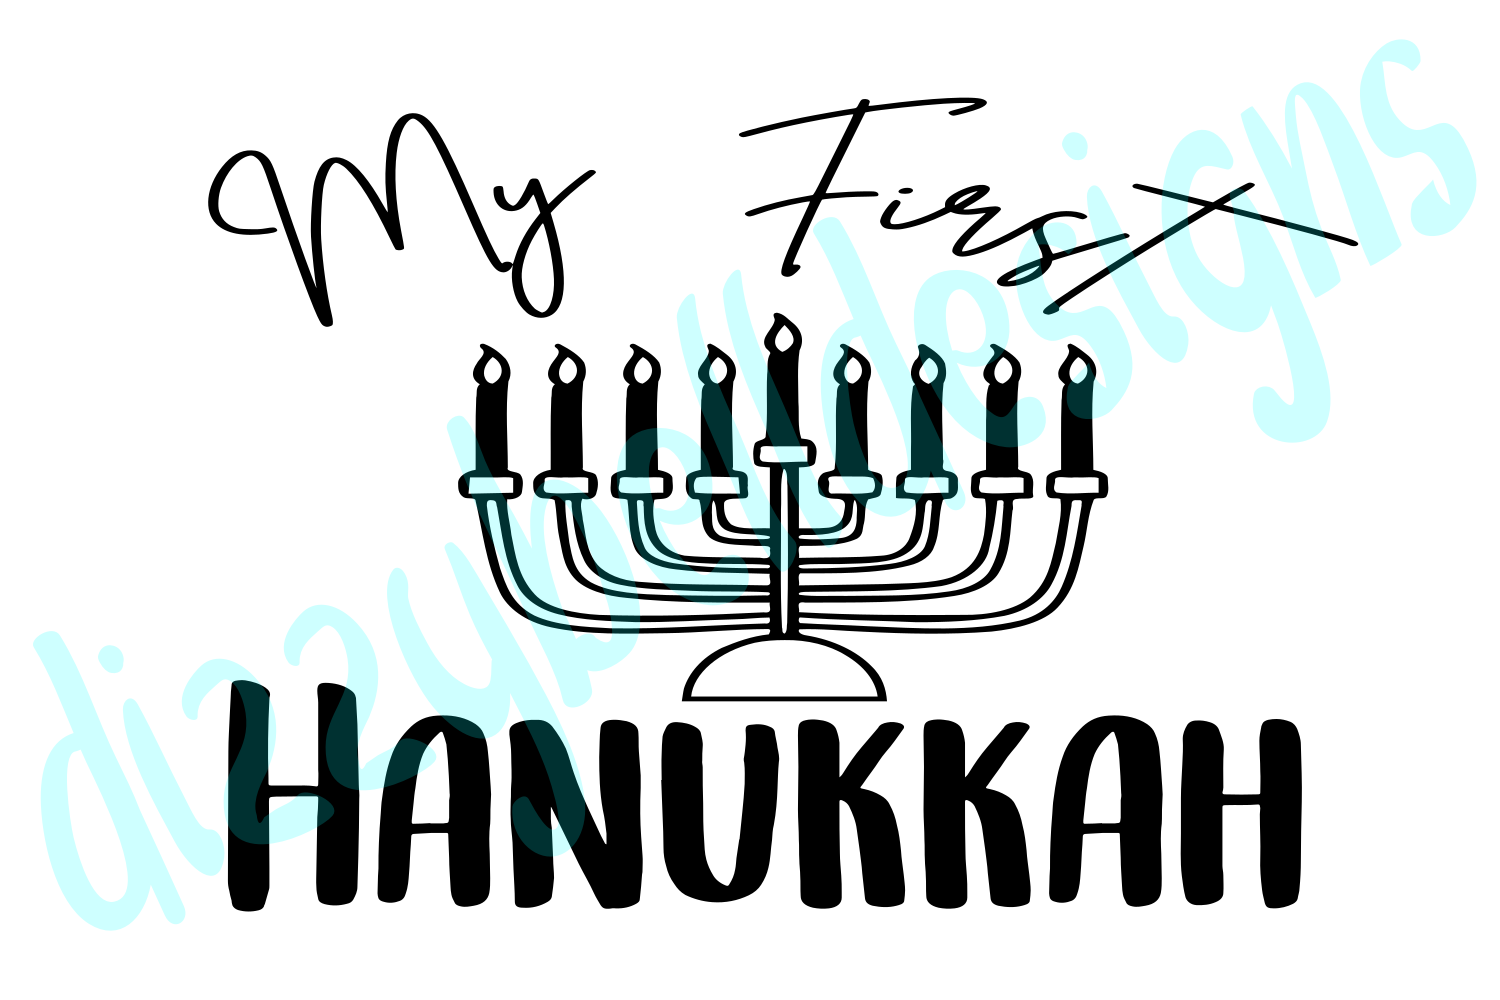 First Hanukkah Baby Bodysuit, First Hanukkah Infant Outfit example image 1